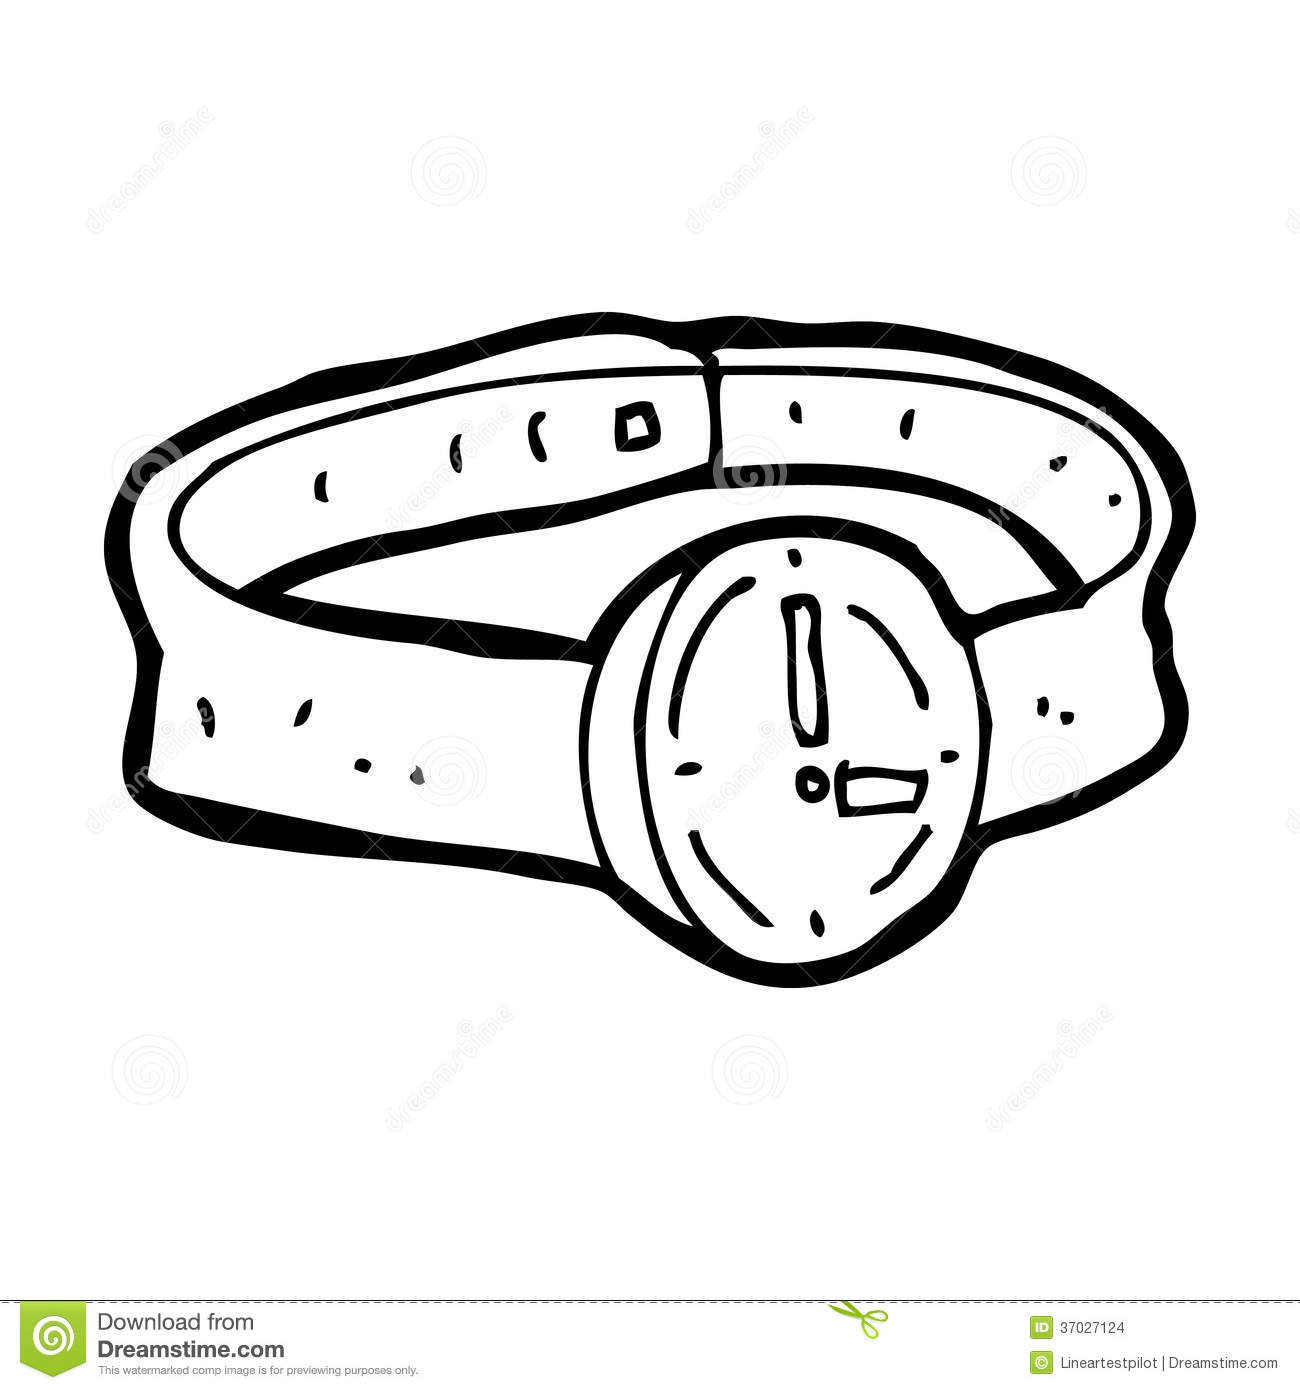 Diet weight lose wrist watch illustrations and clipart 3 019 wrist watch royalty for Cartoon watches